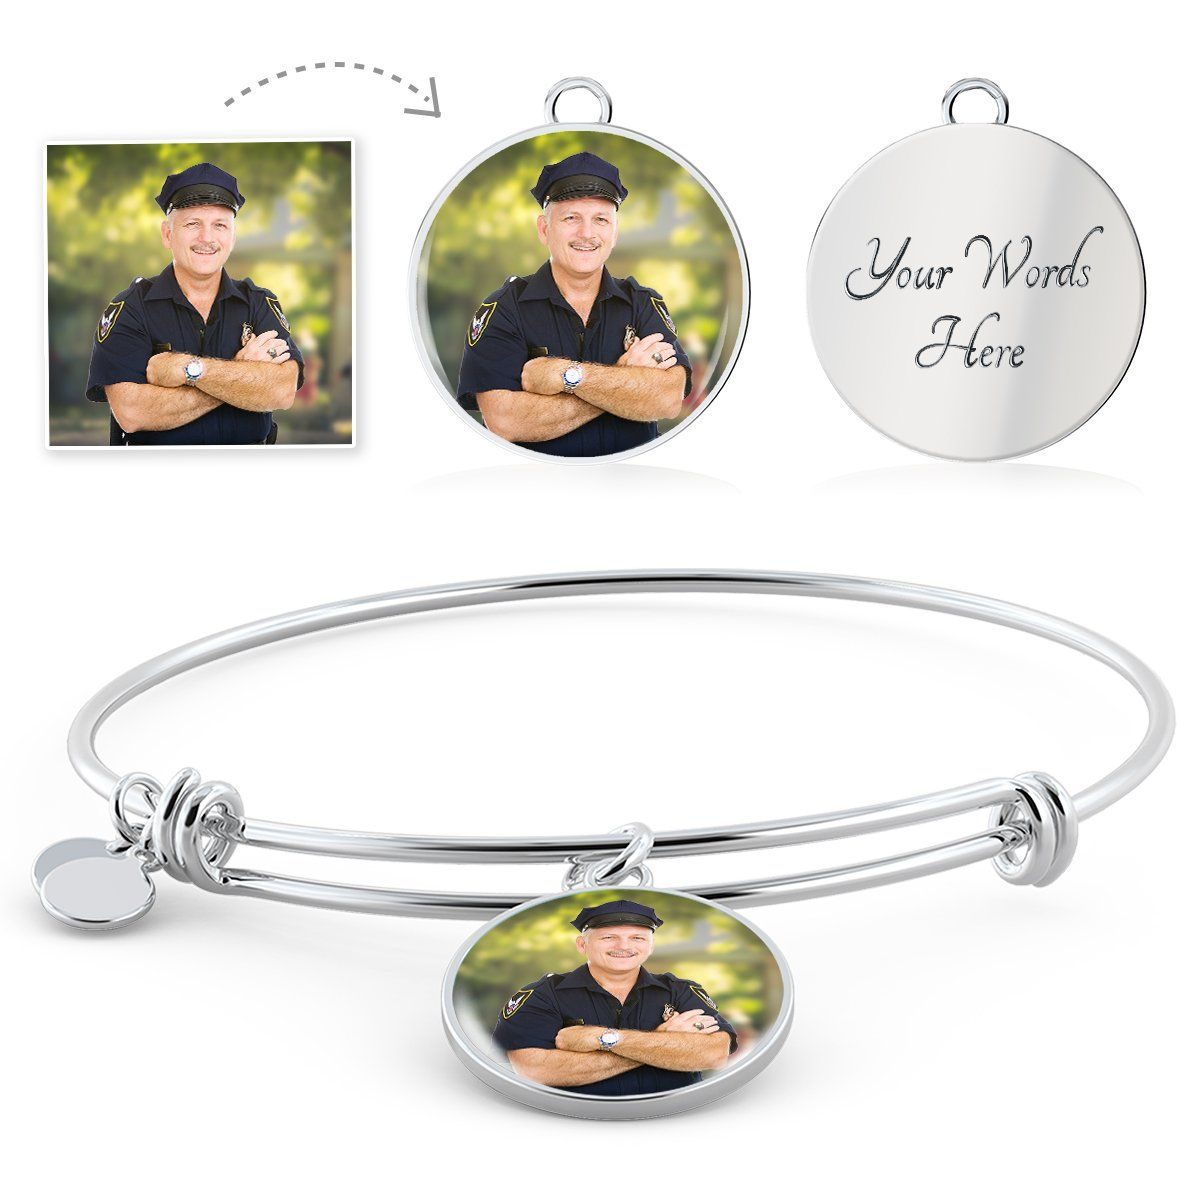 Law Enforcement Personalized Photo Circle Bangle Bracelet | Heroic Defender